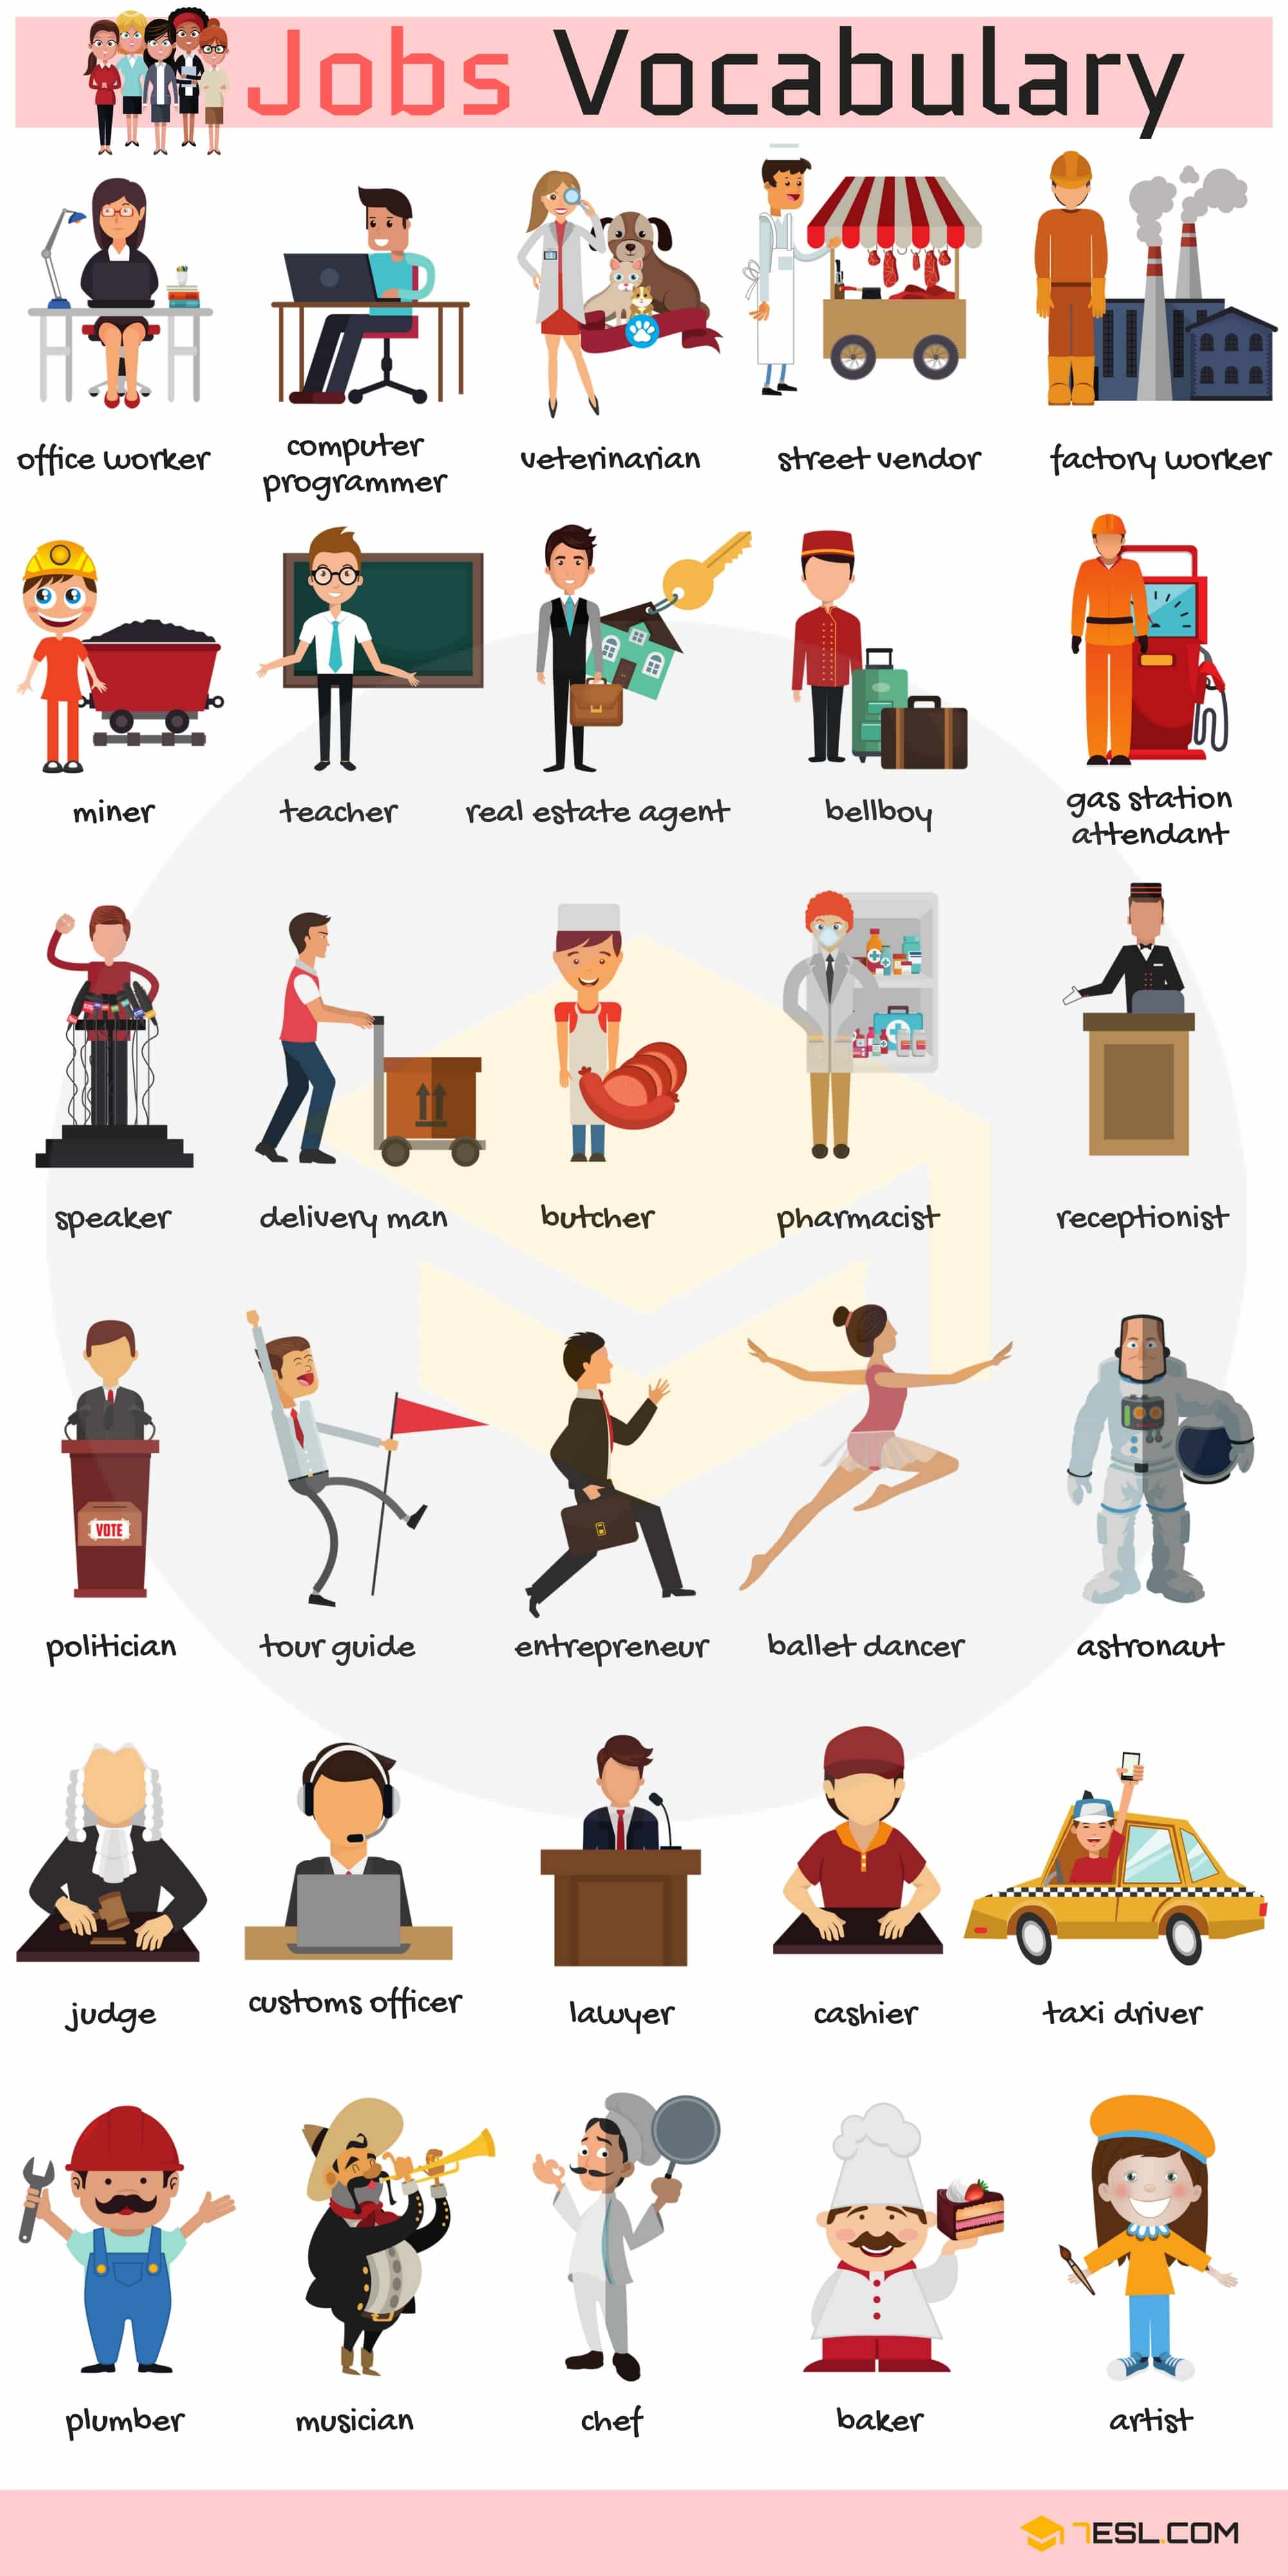 Jobs Vocabulary in English List of Professions